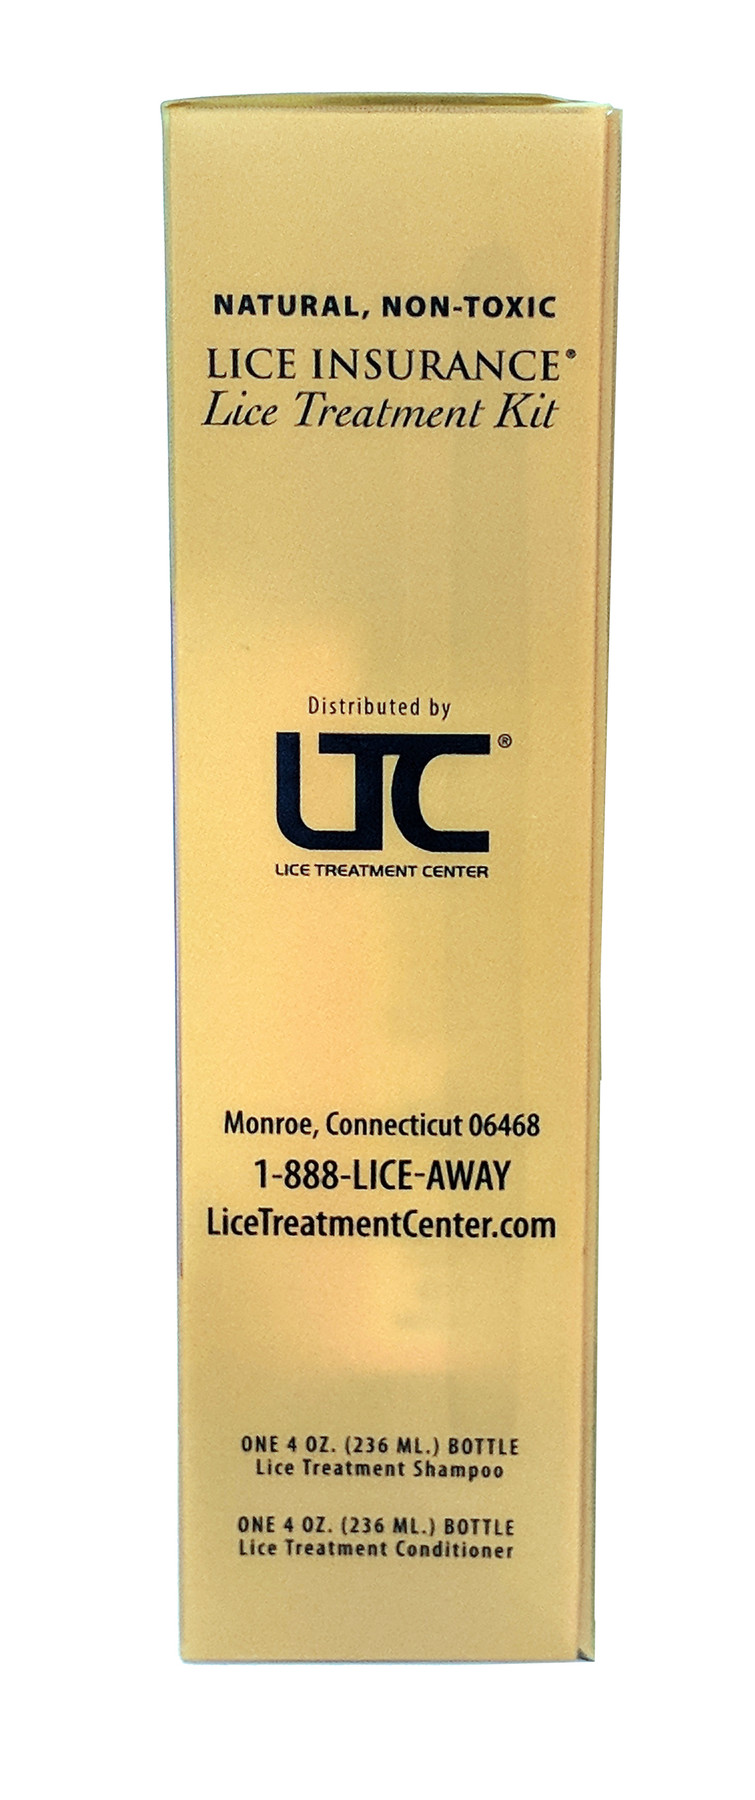 Lice Insurance® Lice Treatment Kit by LTC®